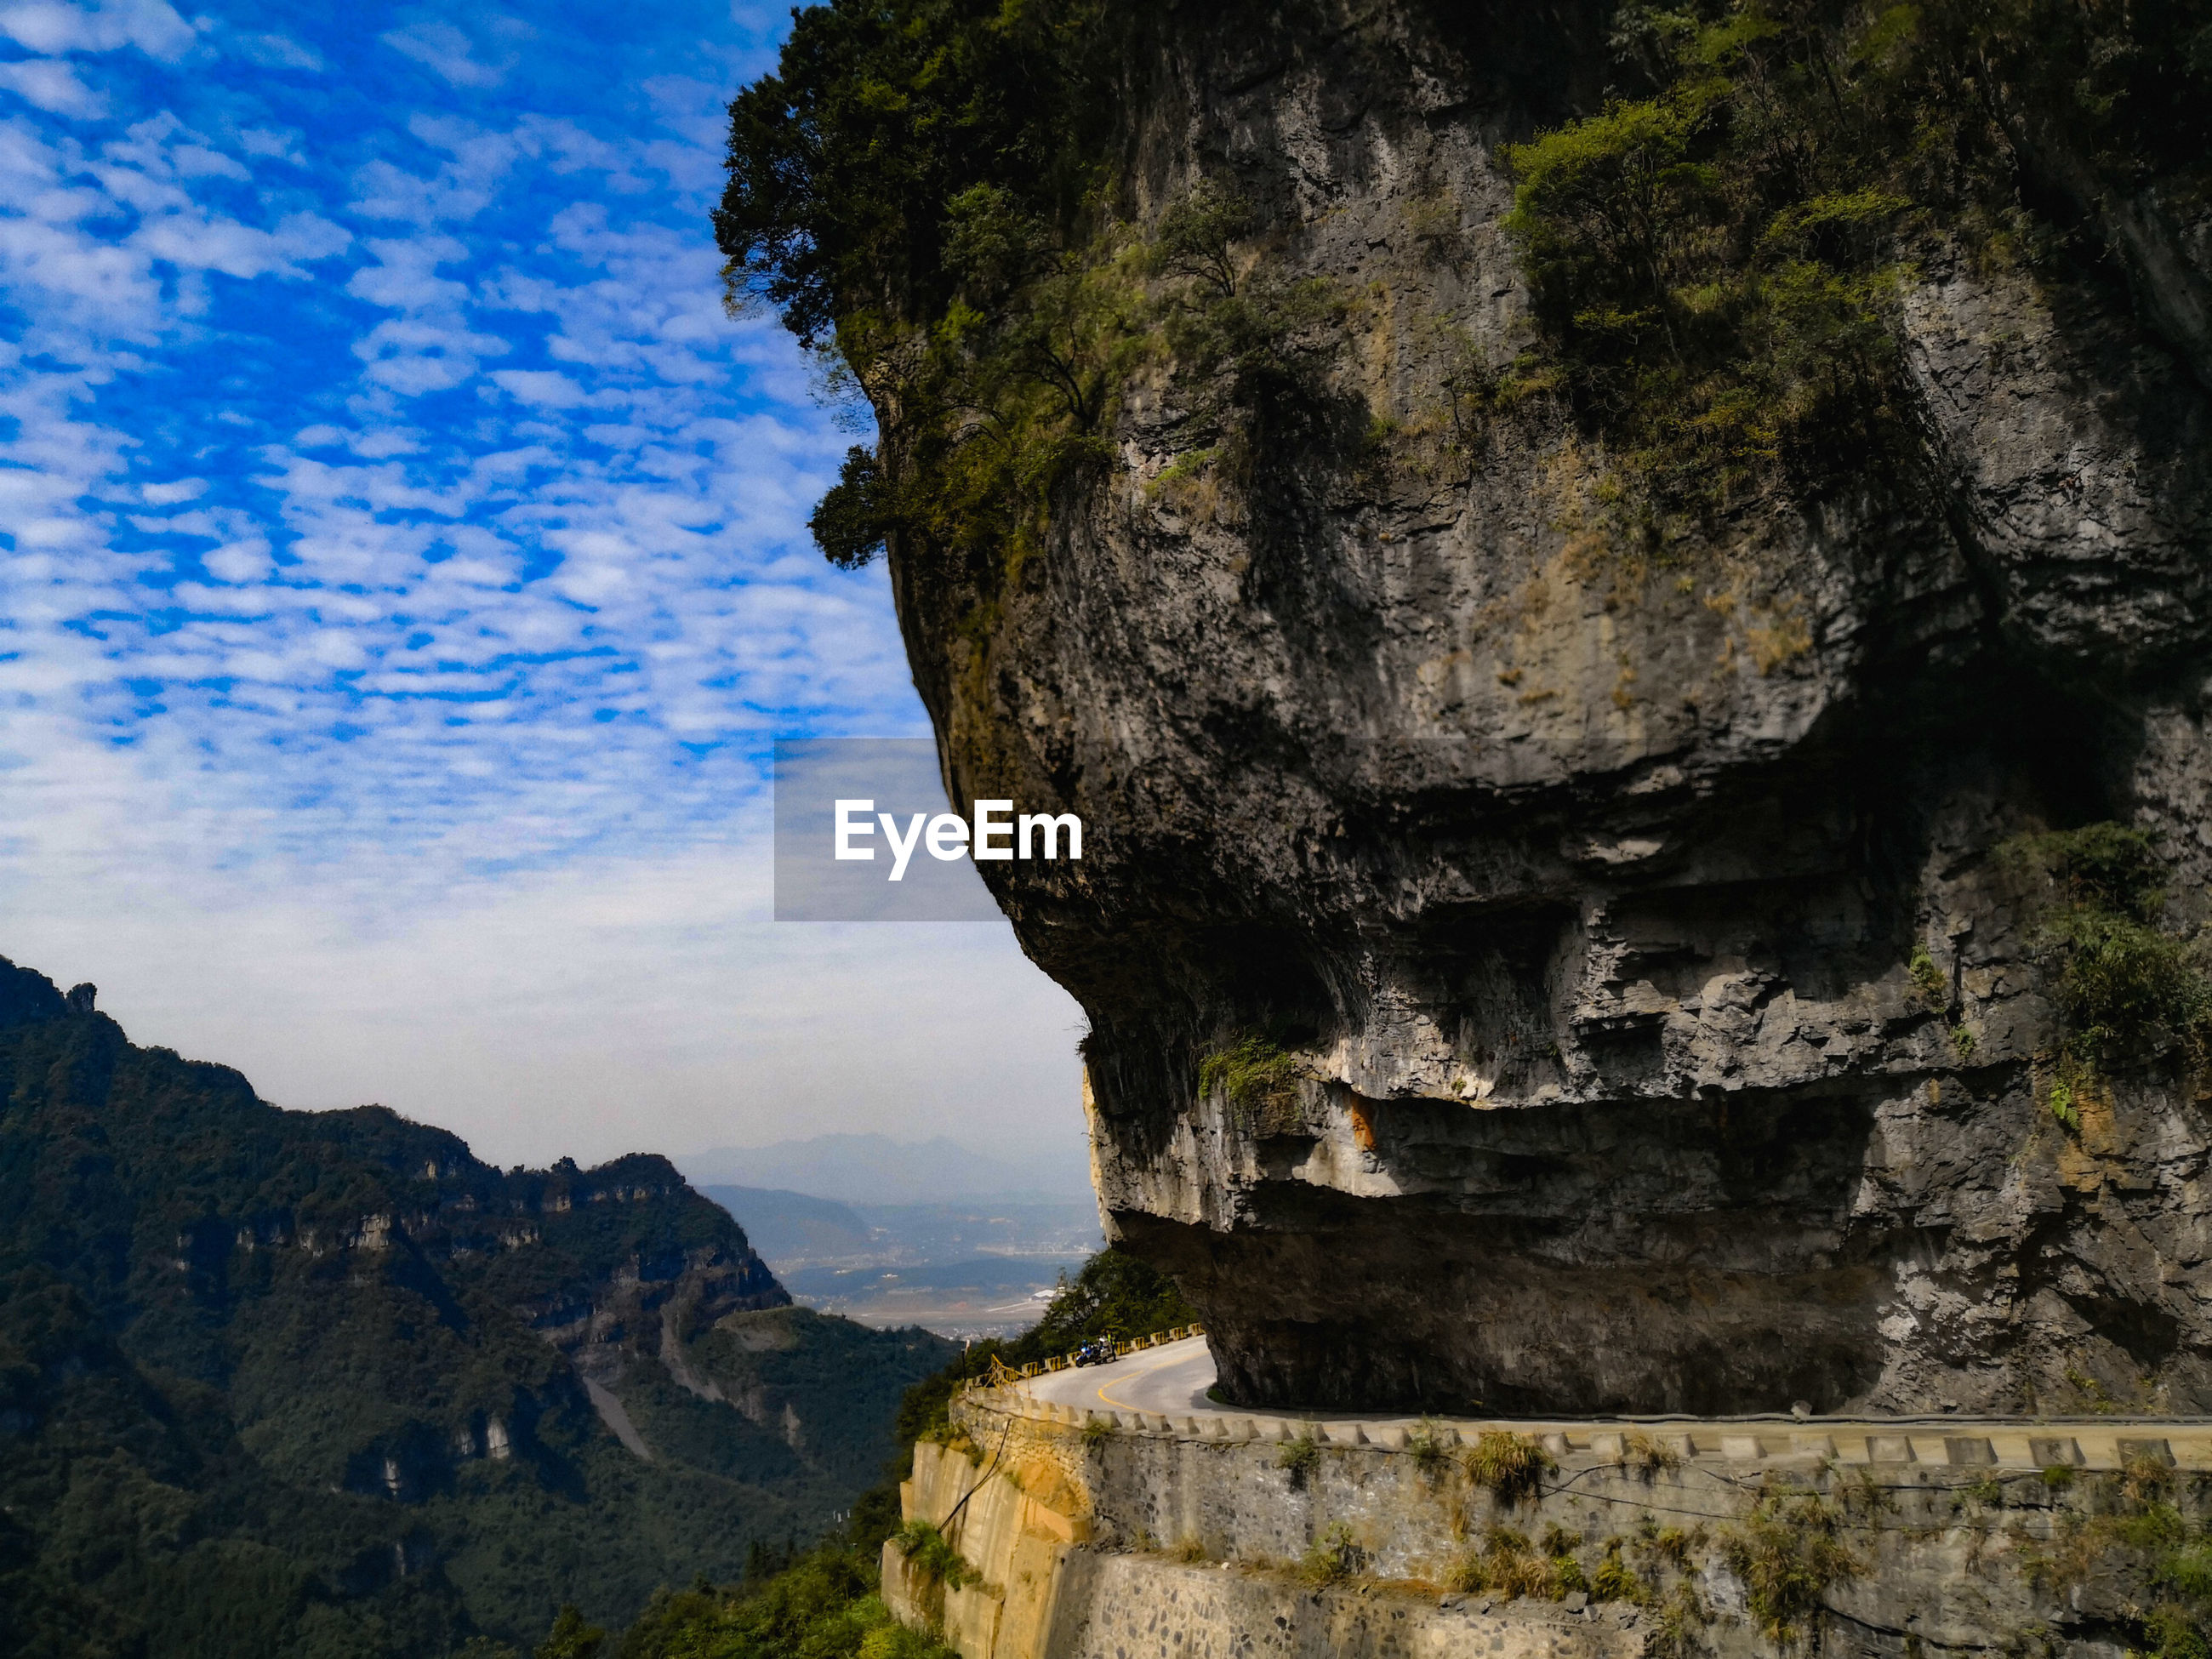 ROCK FORMATION ON CLIFF AGAINST SKY